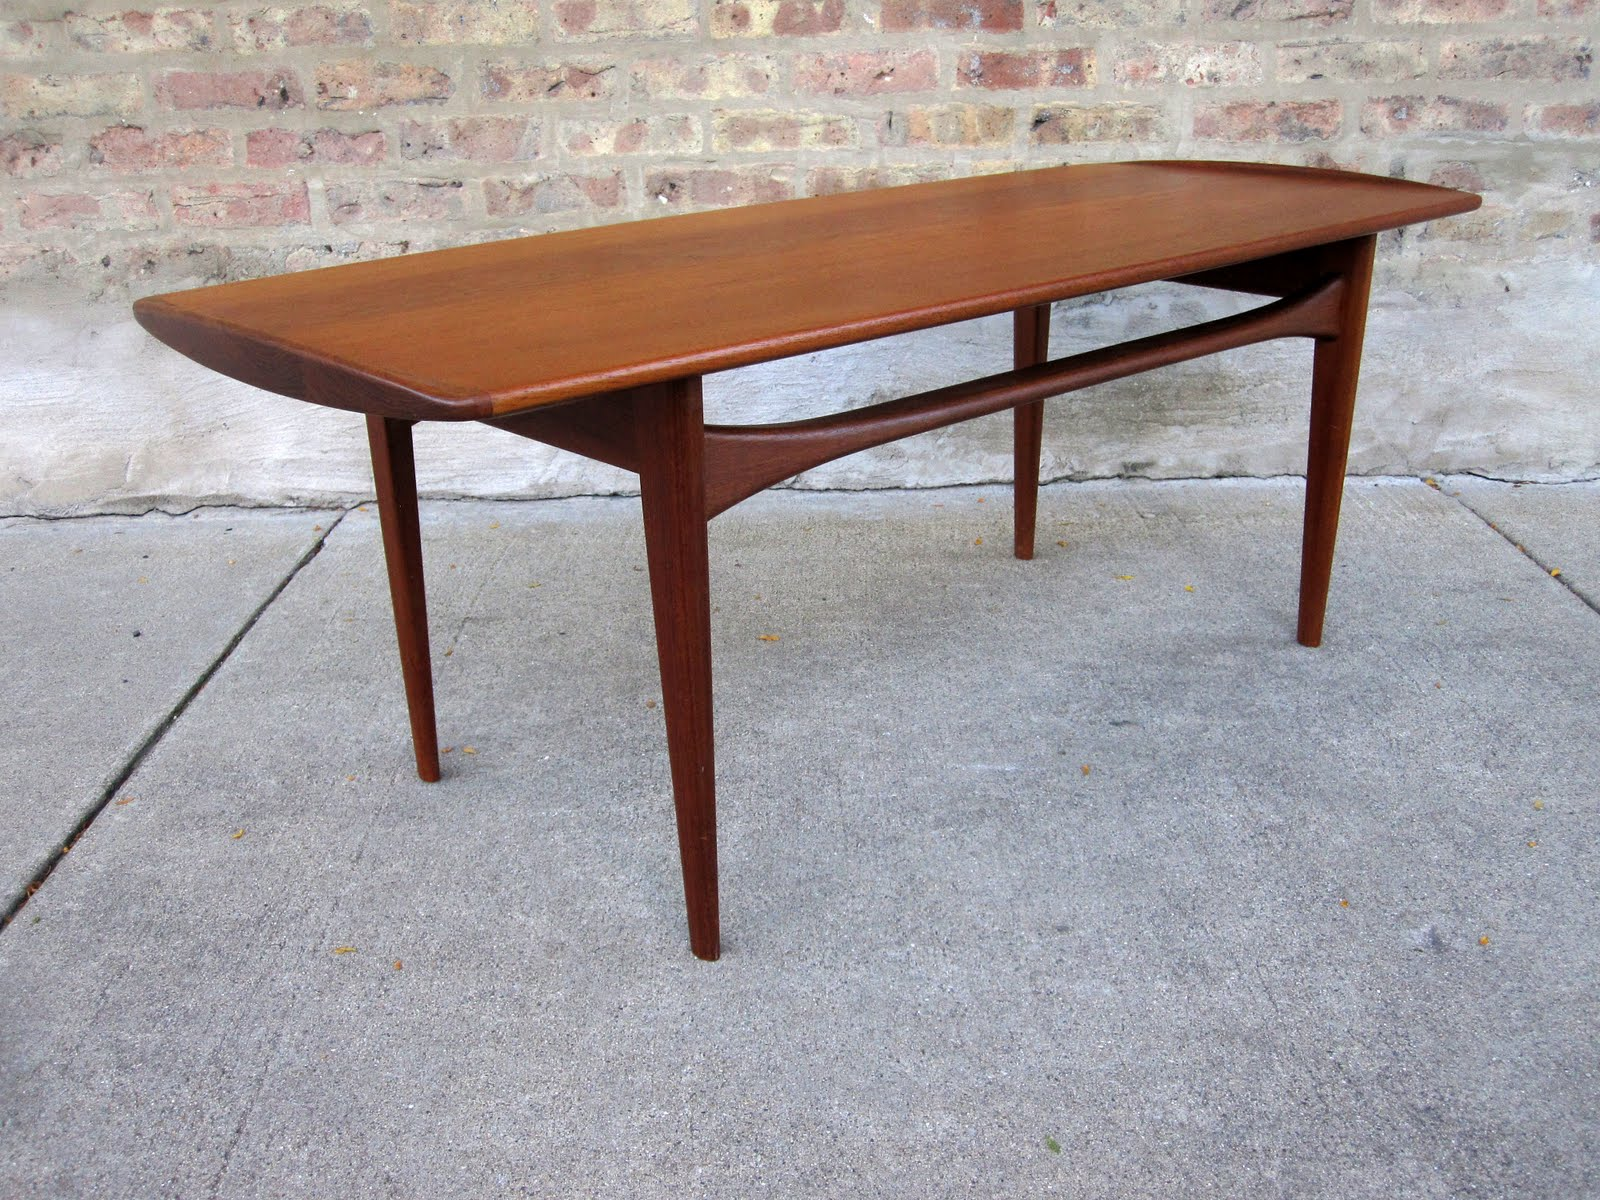 Circa Midcentury 39 Finn Juhl 39 Teak Coffee Table